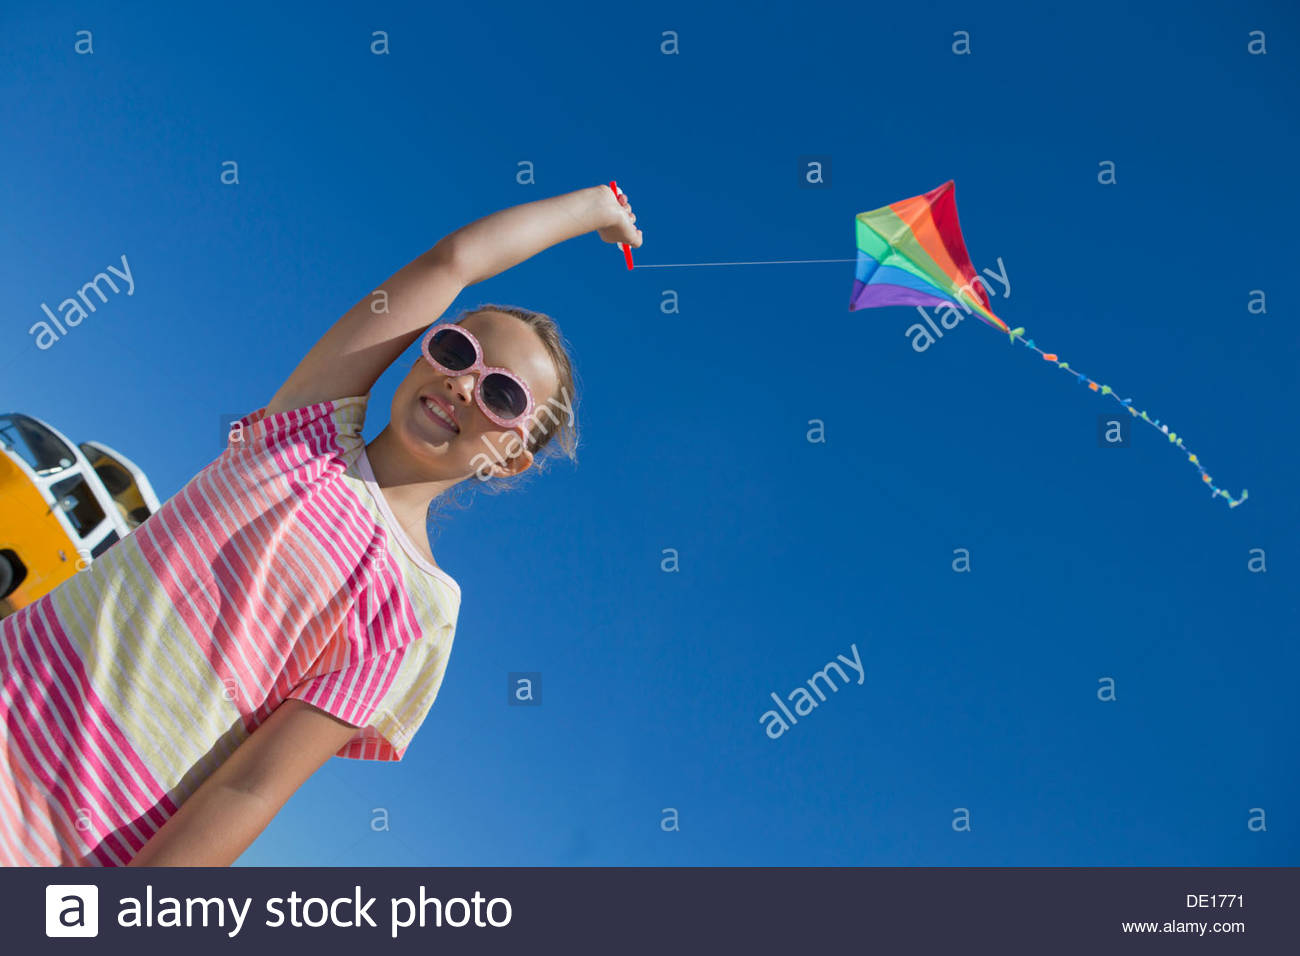 Girl flying kite against blue sky - Stock Image